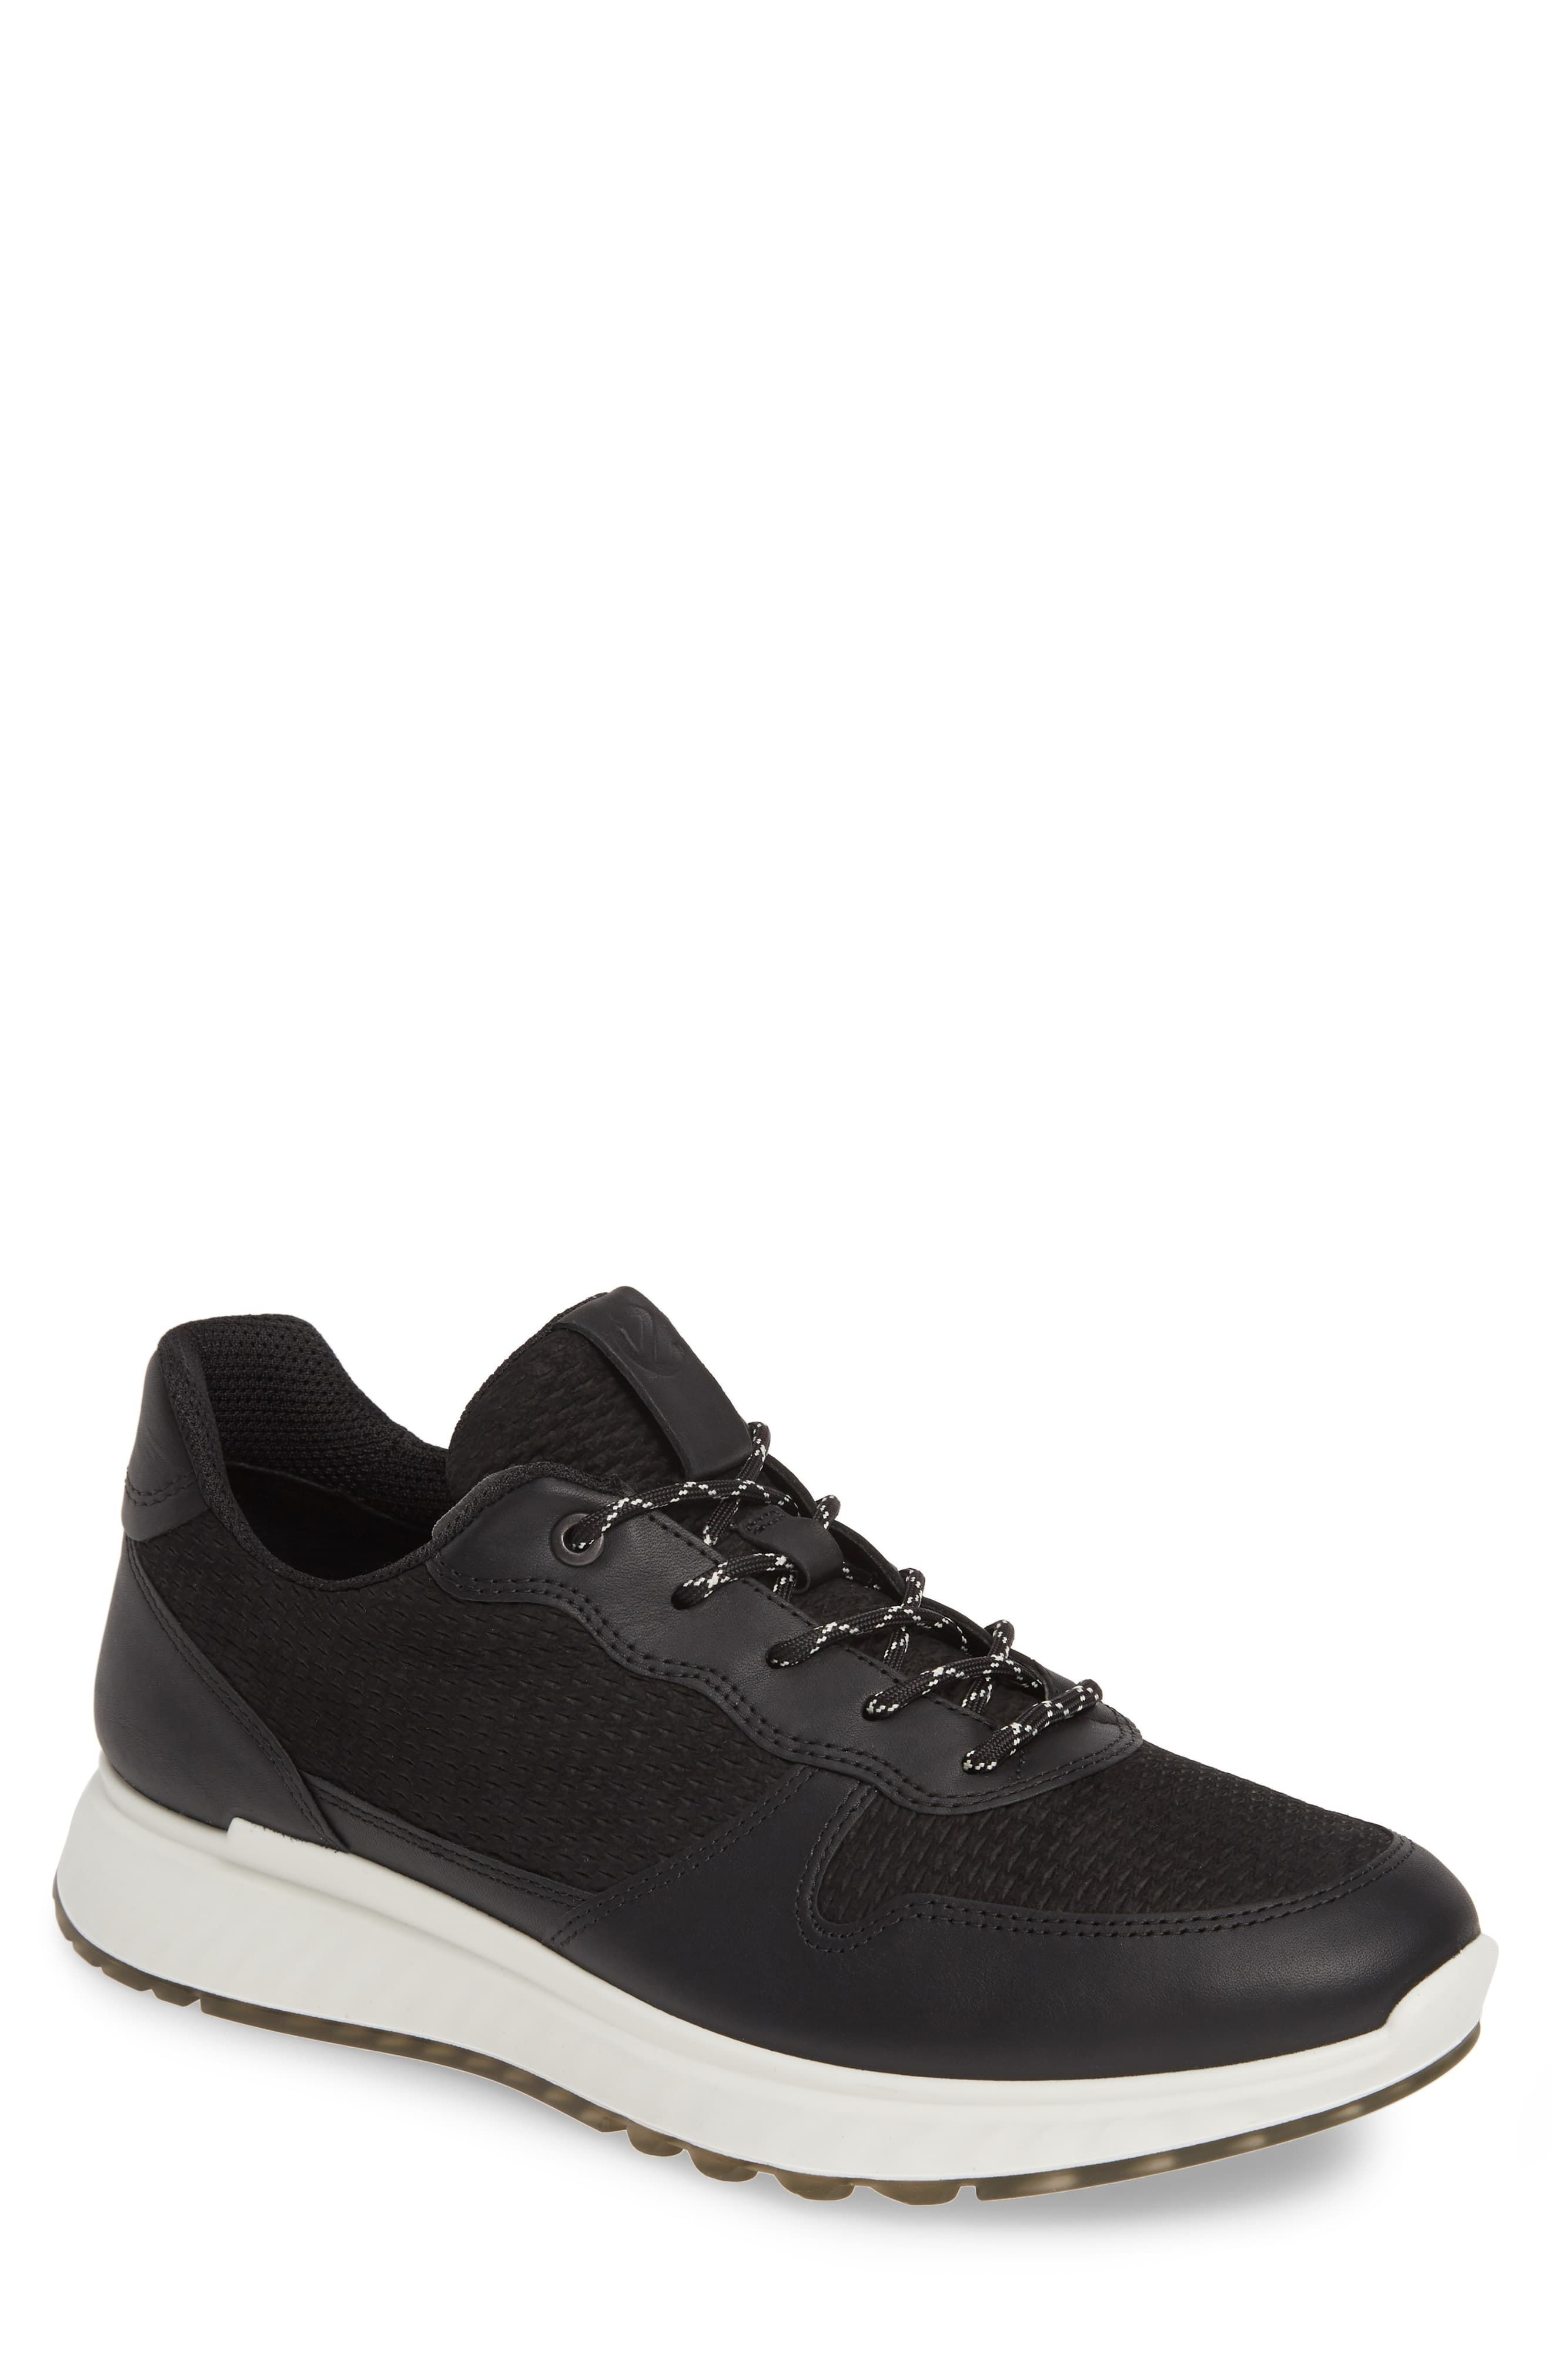 291a8151 Ecco ST1 Sneaker in 2019 | Products | Sneakers, Sneakers nike, Shoes